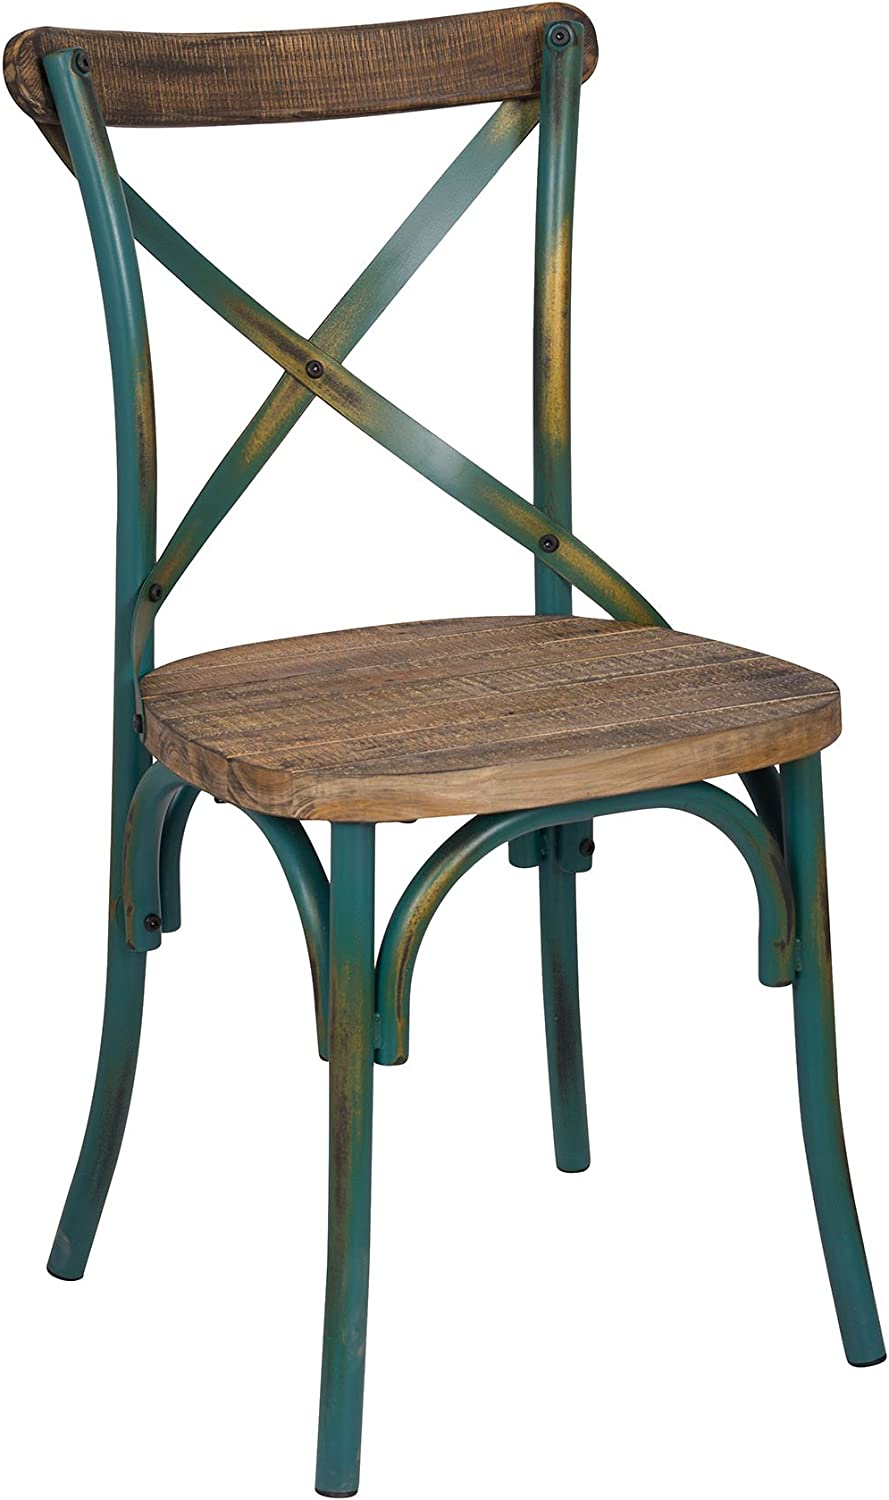 ACME Furniture 73072 1 Piece Zaire Side Chair, Walnut & Antique Turquoise